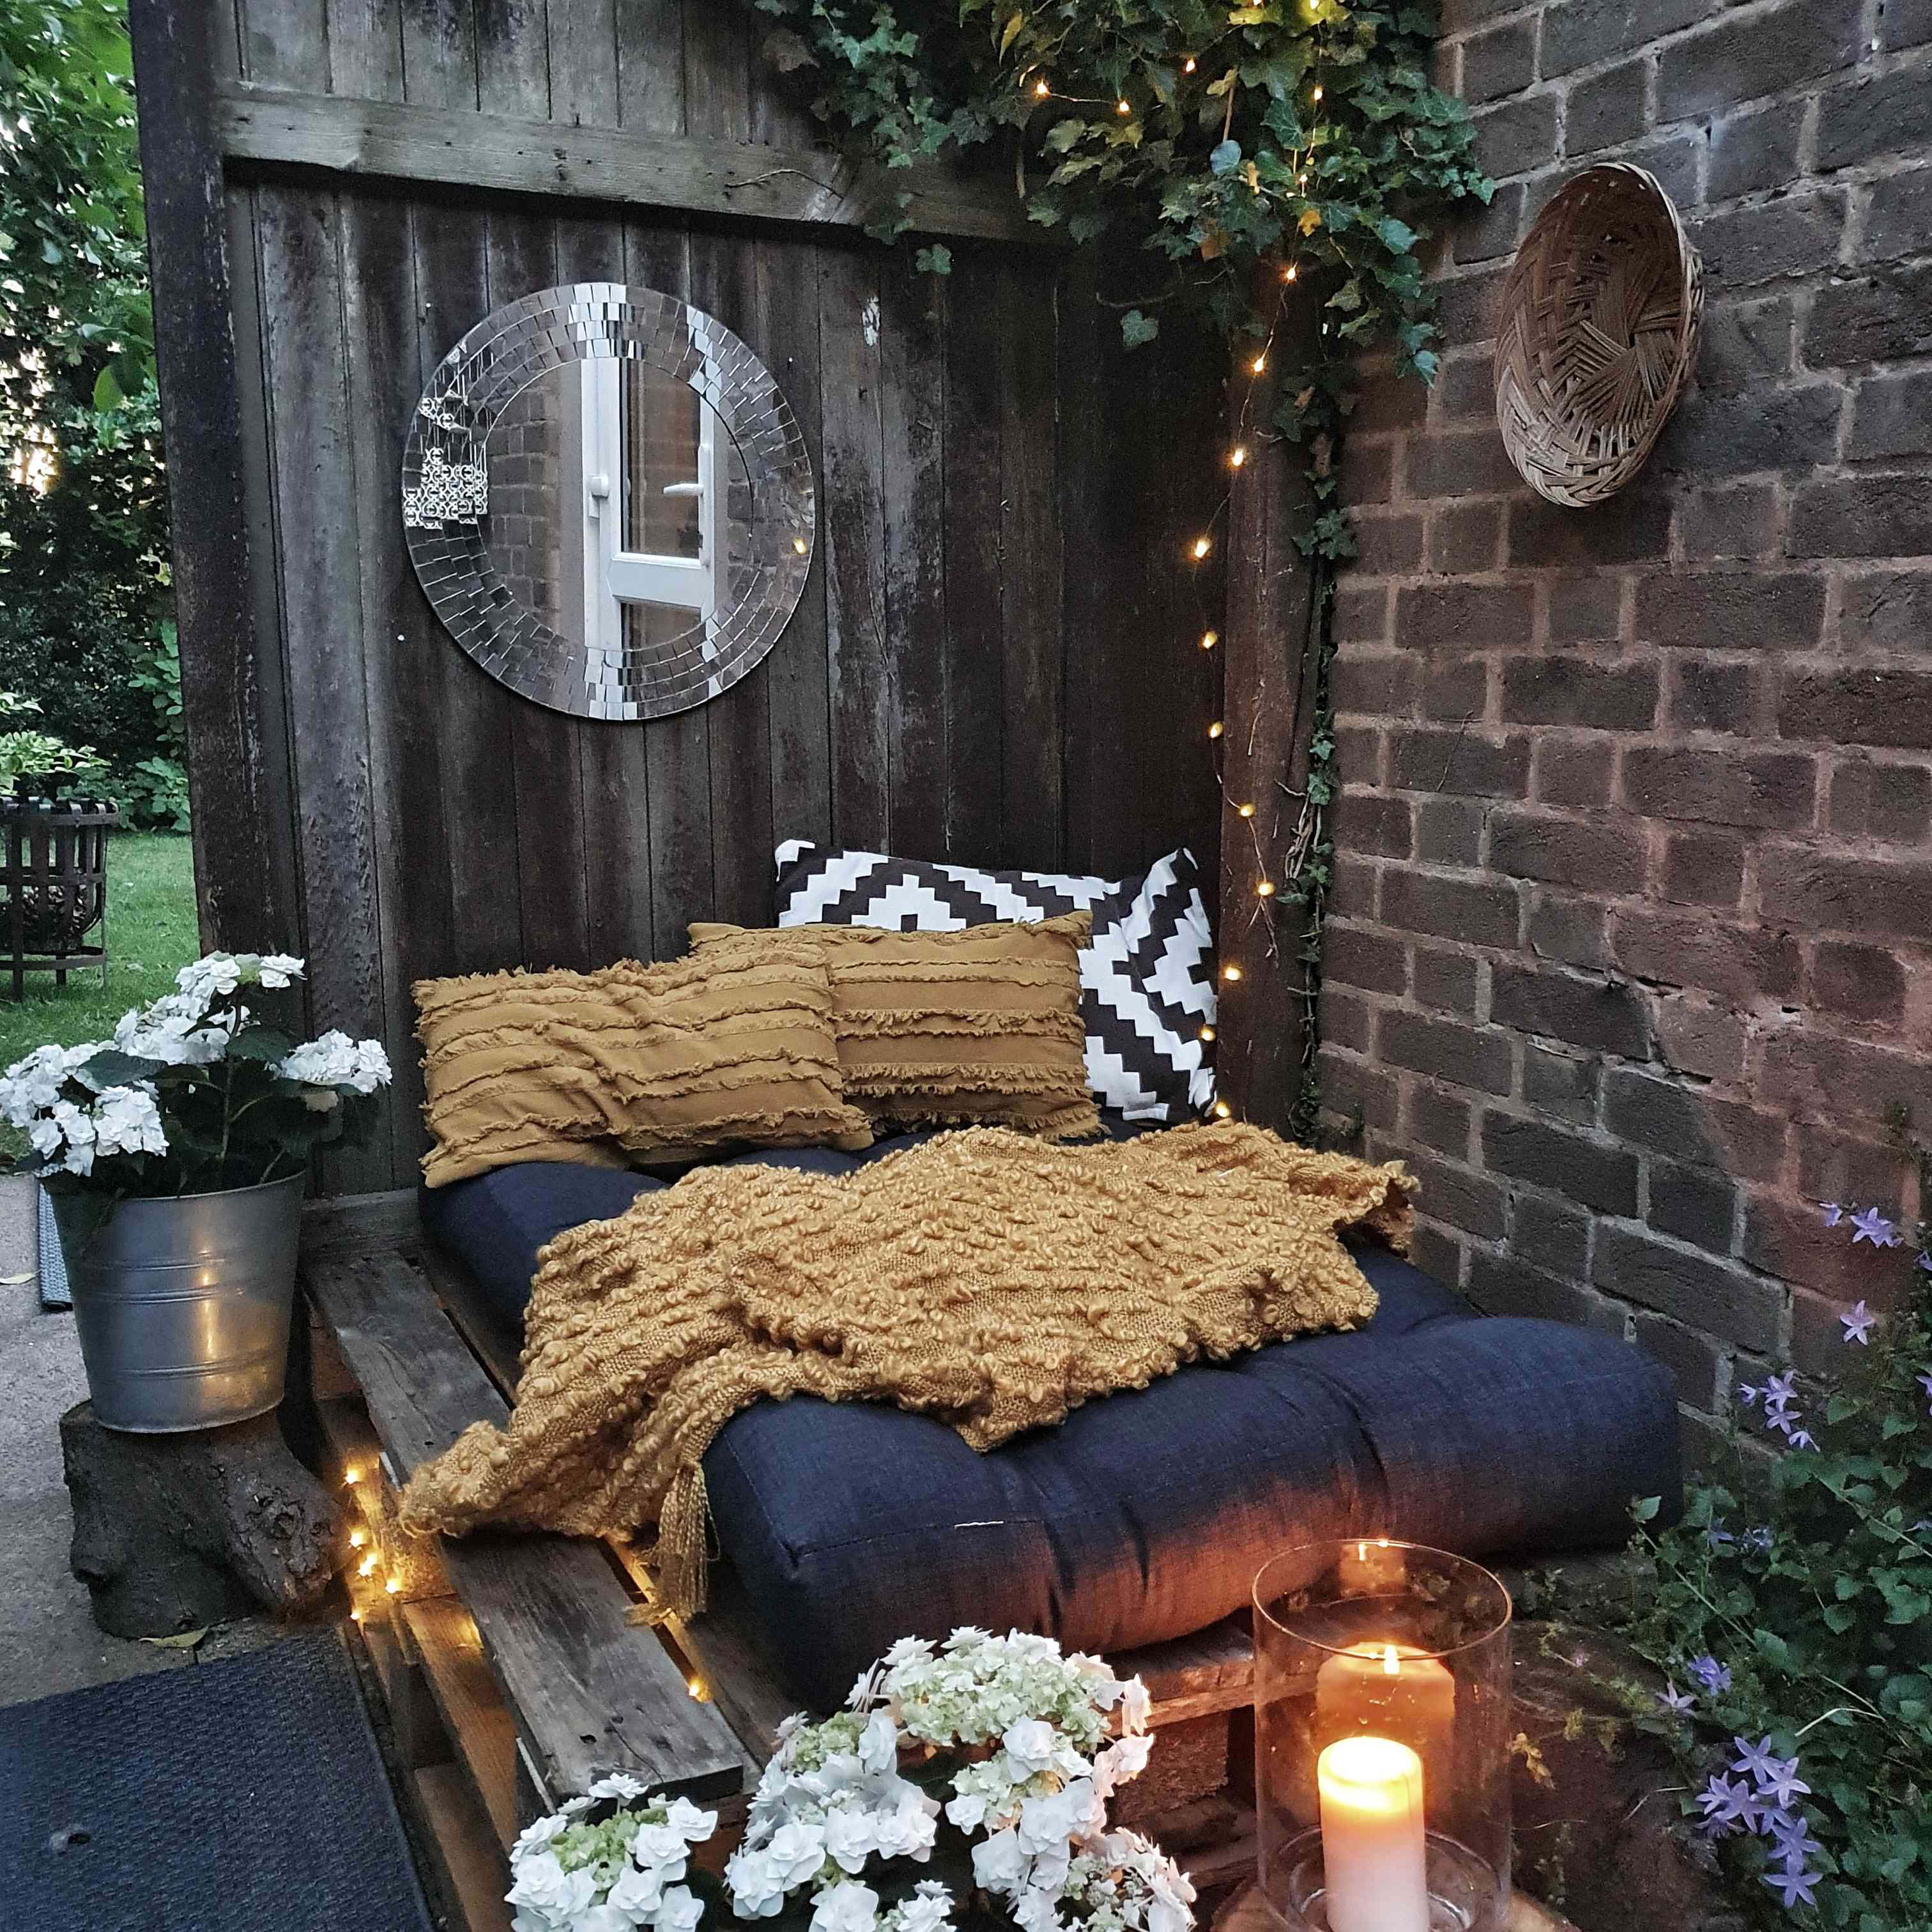 An outdoor bed features a distressed wood fence, a brick wall, textured bedding and lots of flowers